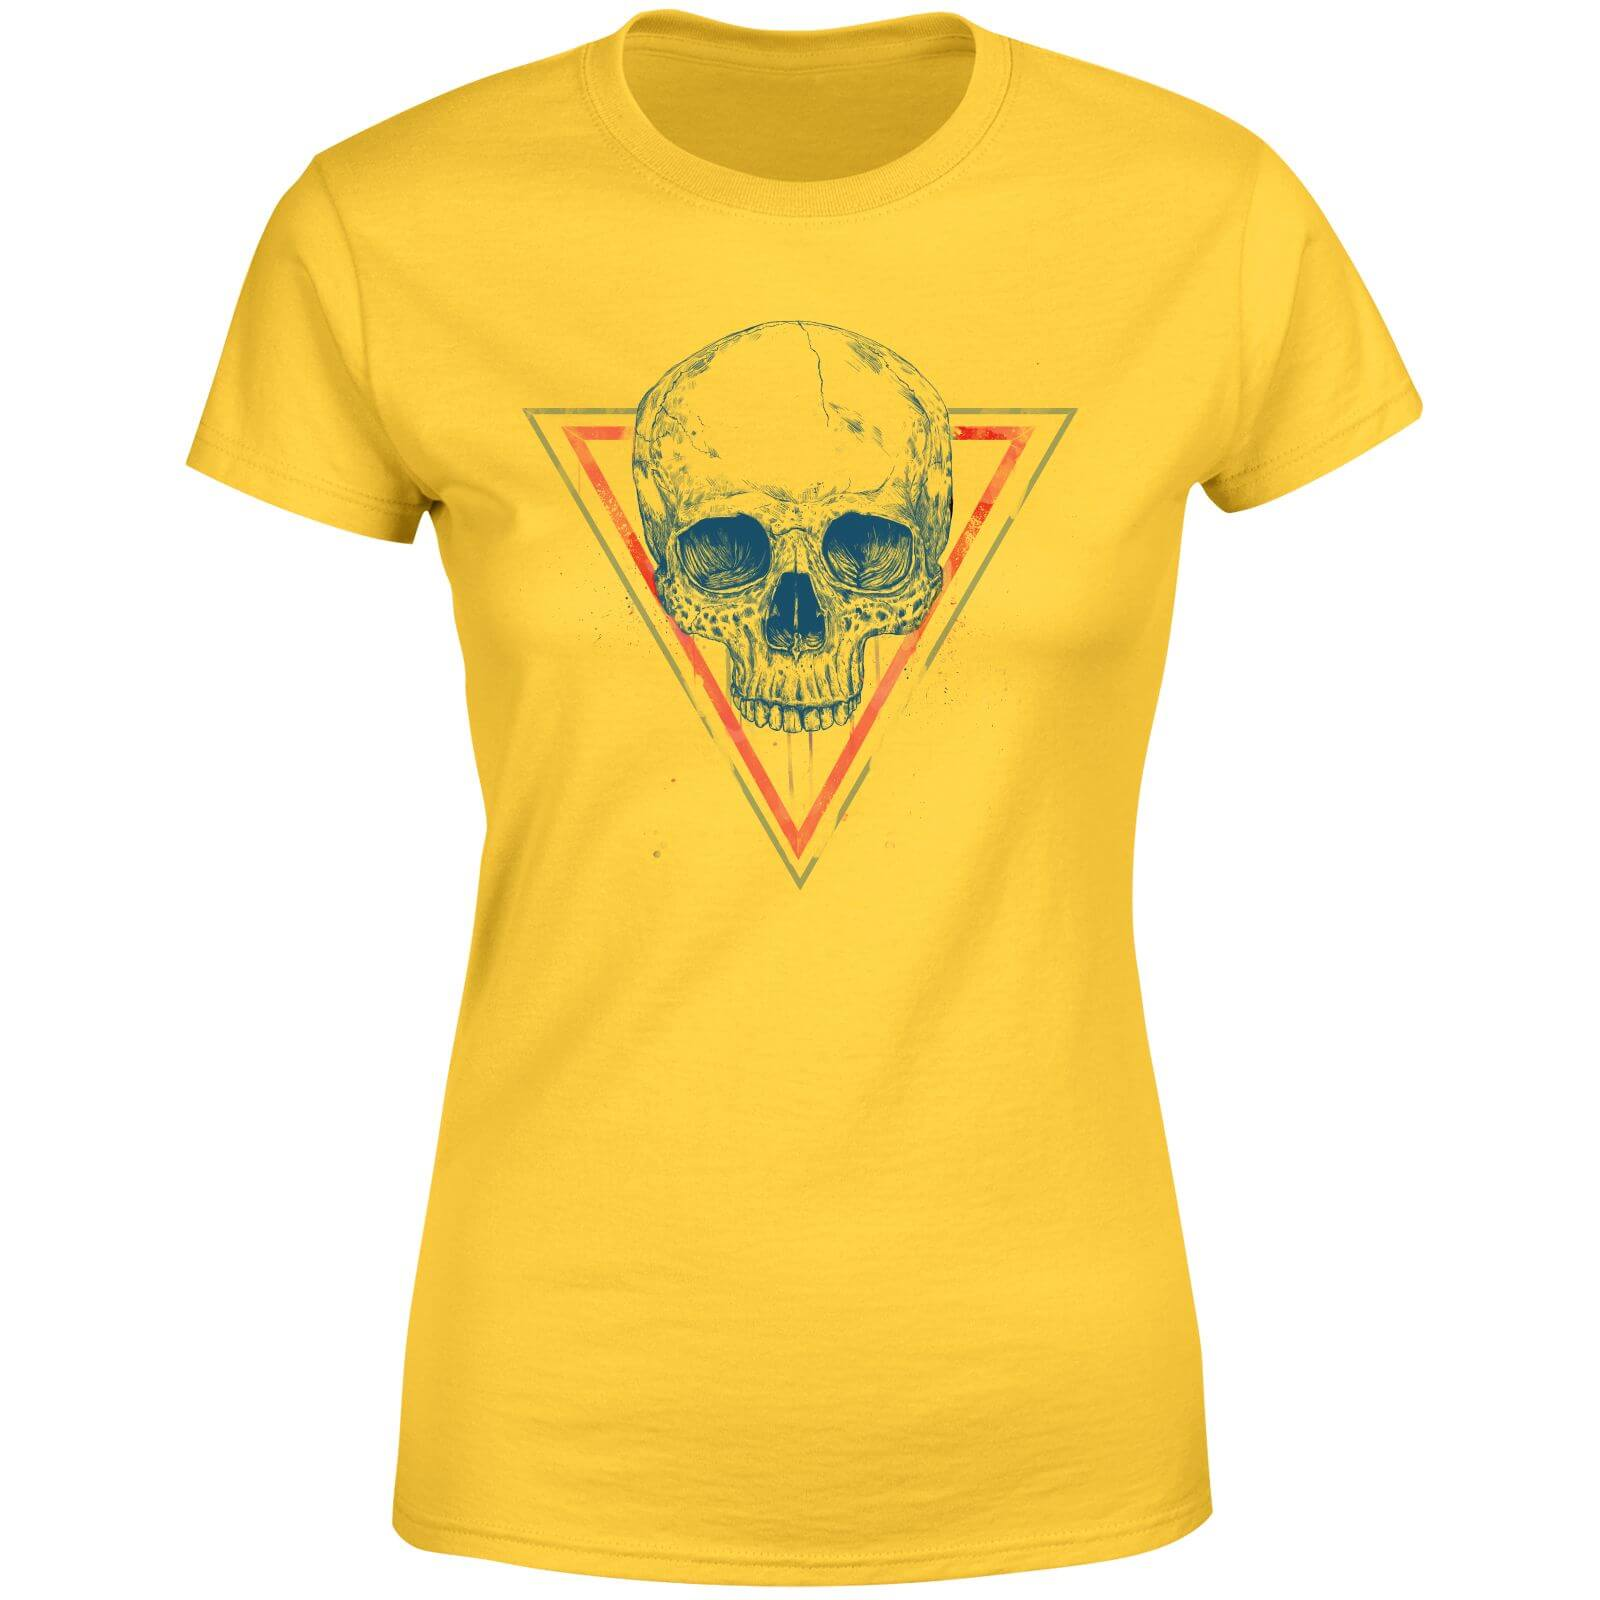 Balazs Solti Skull Women's T-Shirt - Yellow